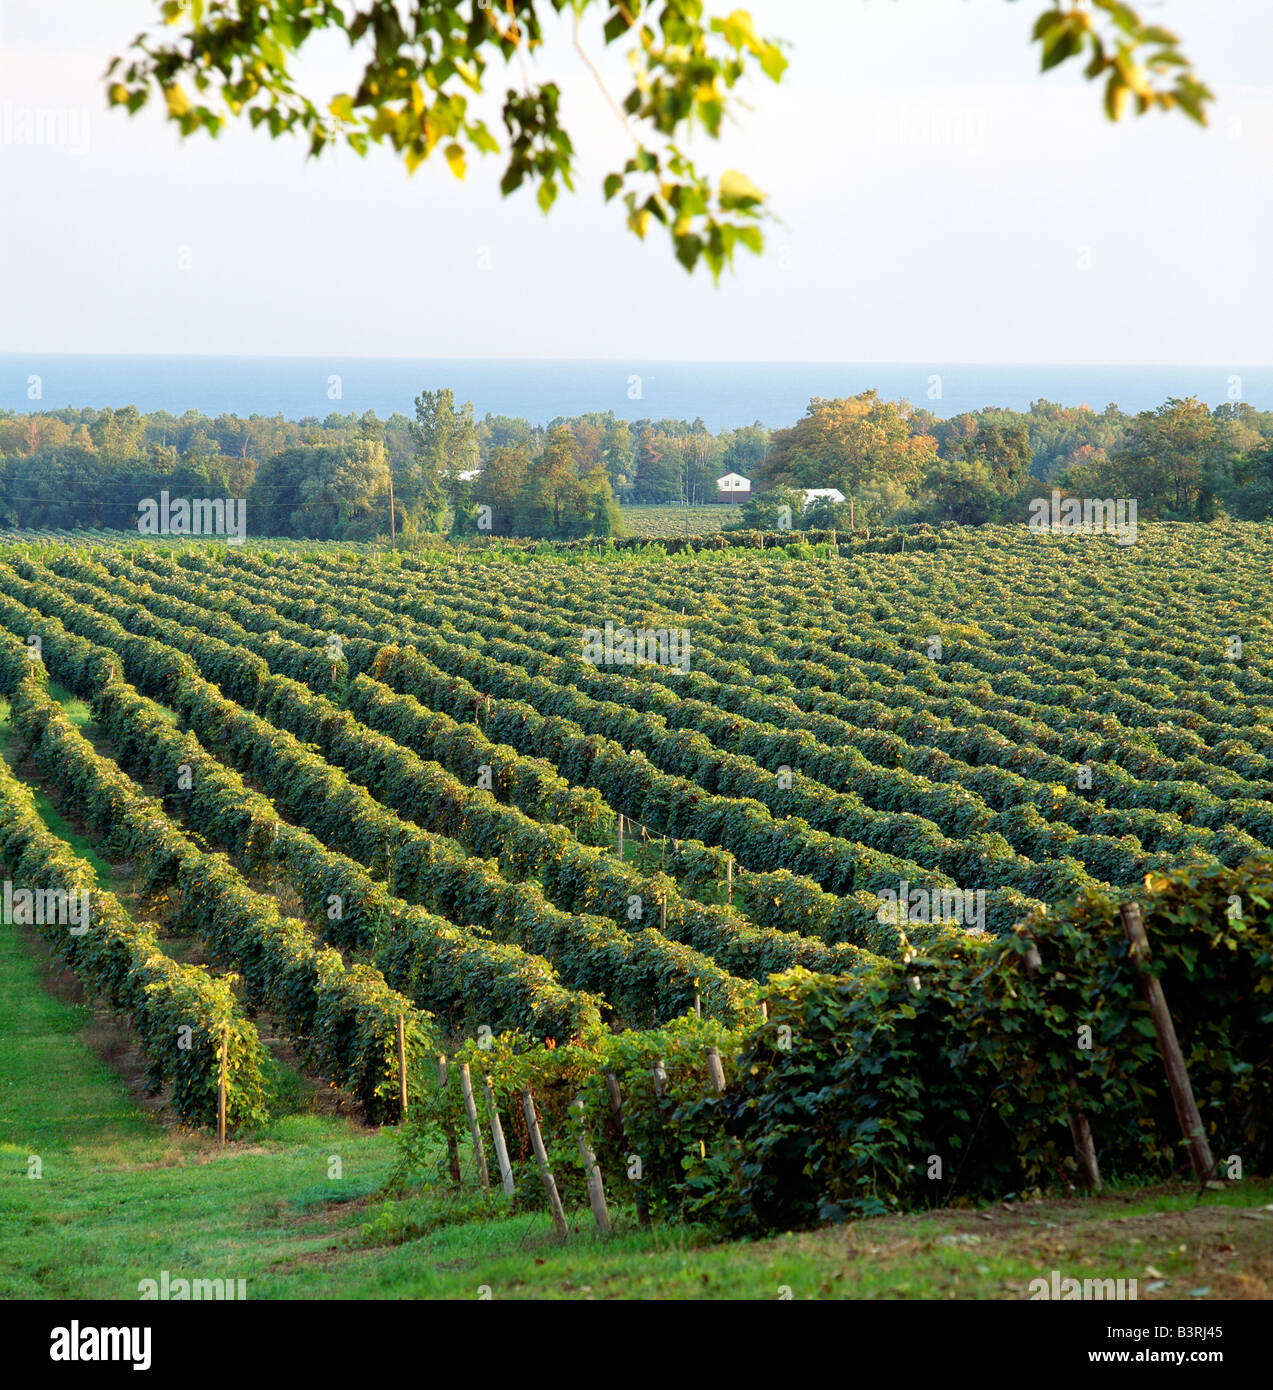 CONCORD GRAPE VINEYARDS & LAKE ERIE BEYOND, TOWN OF NORTH EAST, PENNSYLVANIA, USA - Stock Image